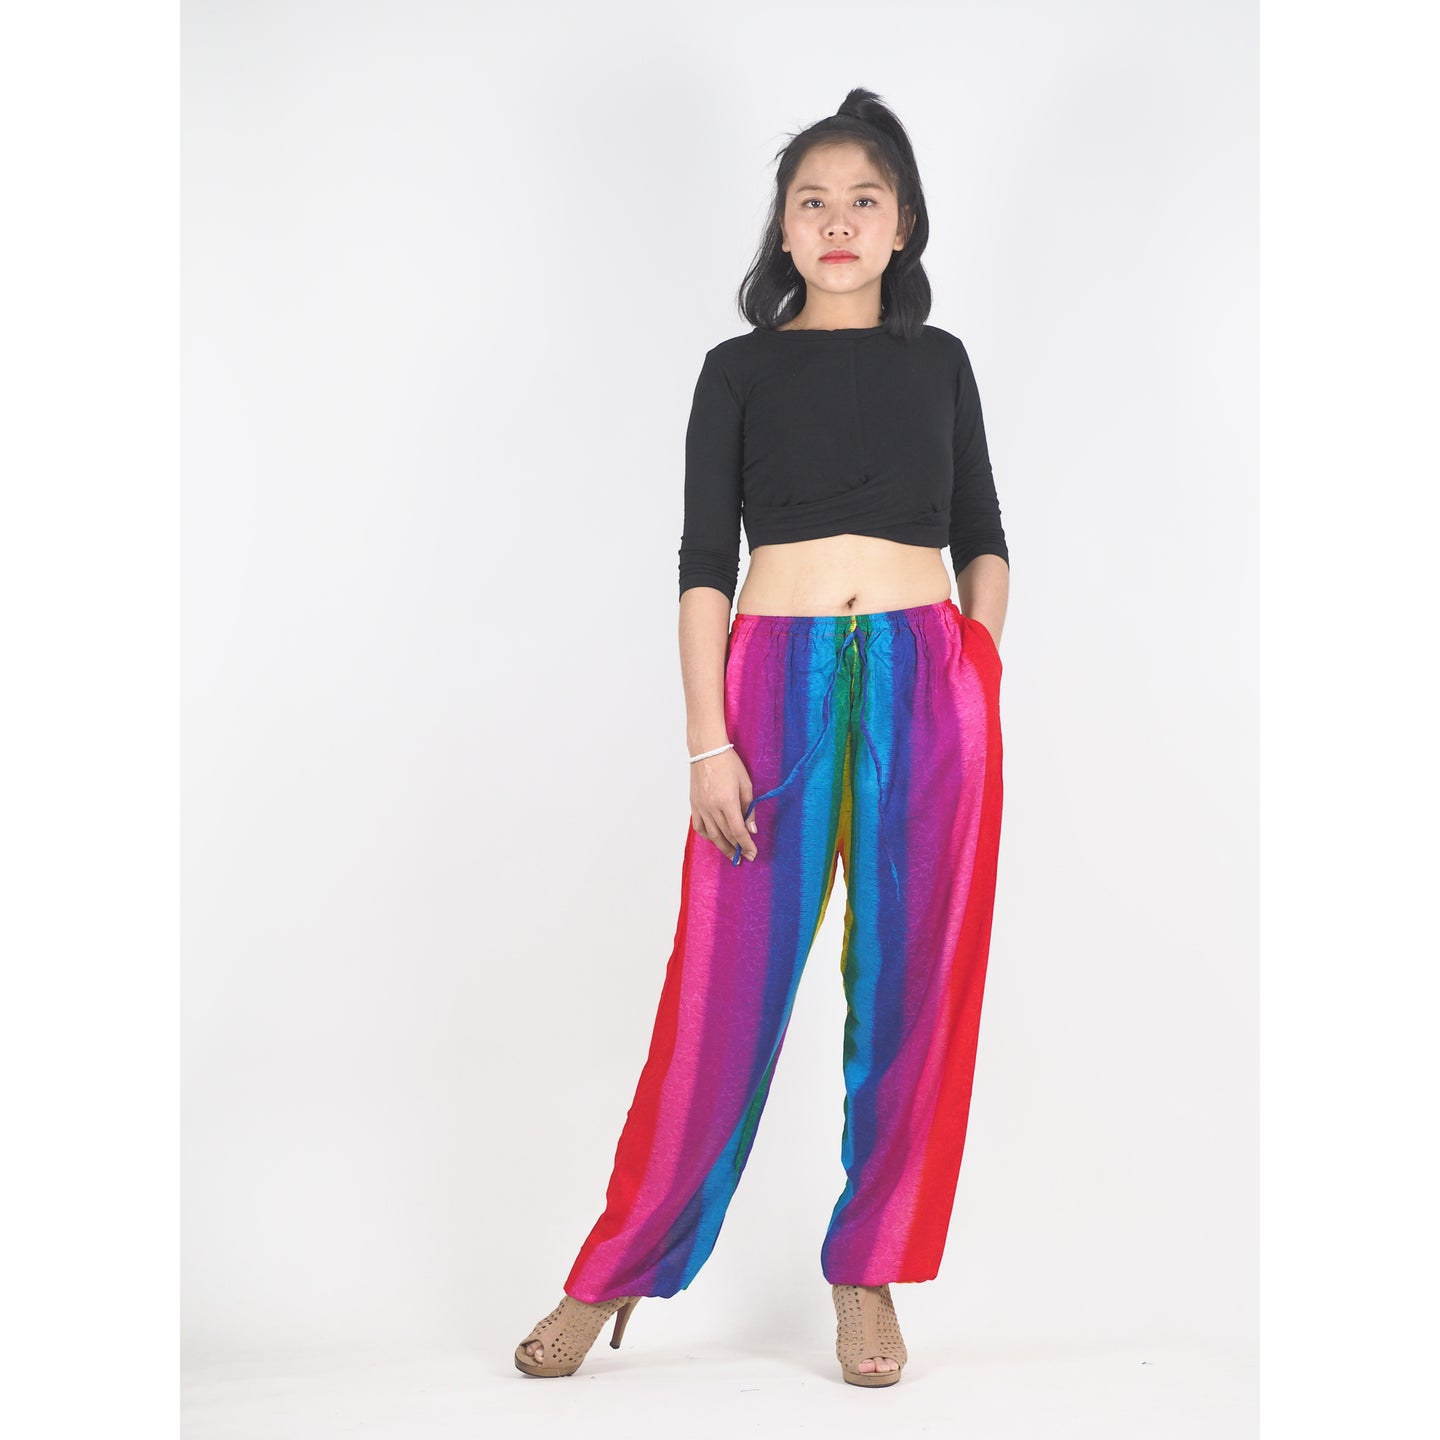 Rainbow Unisex Drawstring Genie Pants in Rainbow PP0110 020046 01